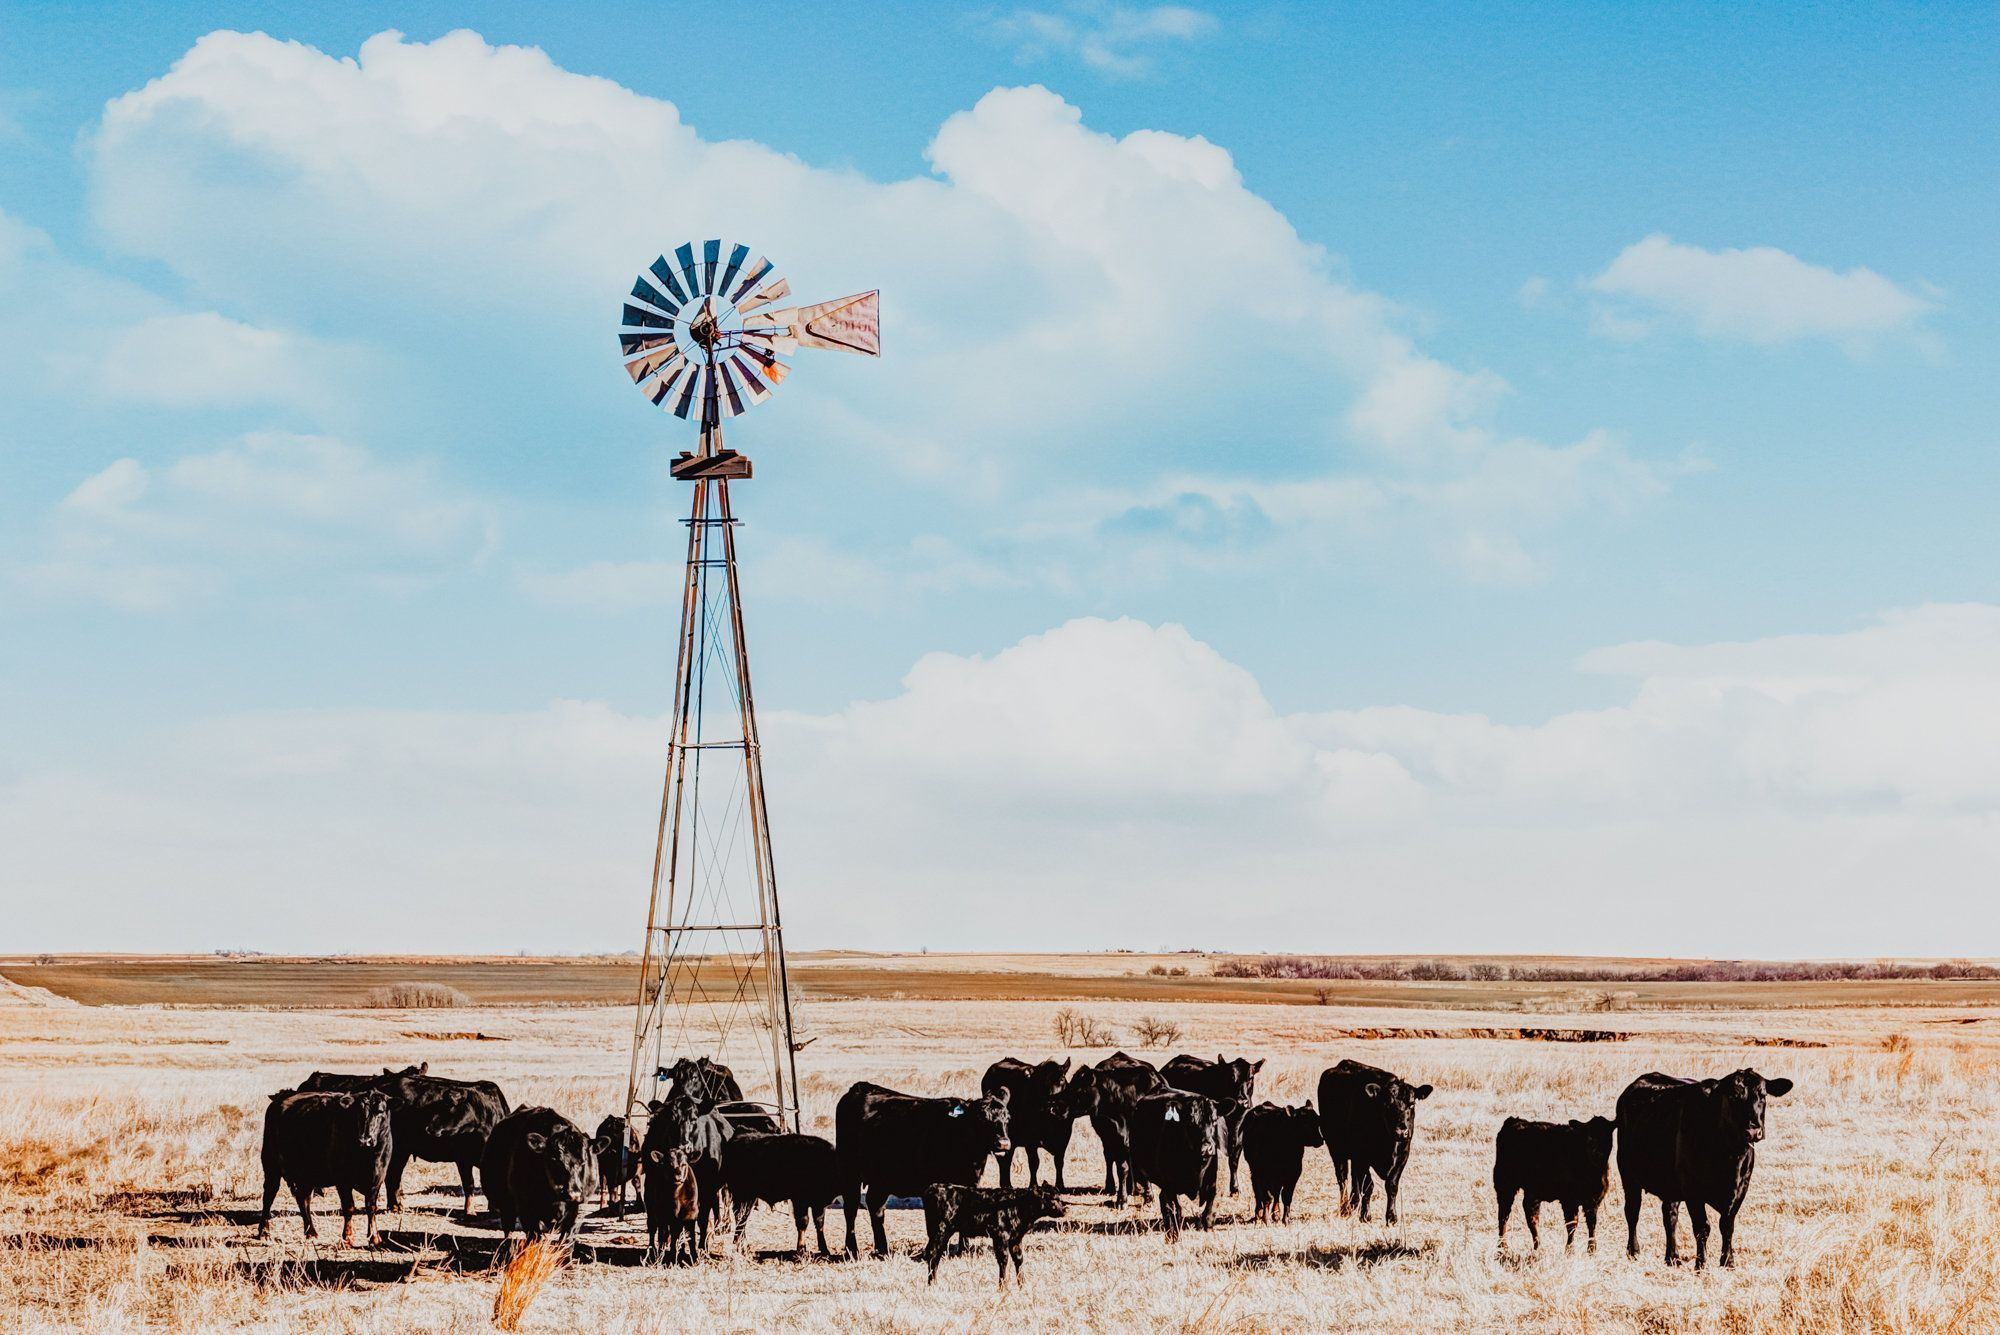 Black Angus Cattle Windmill Canvas Print Or Photo Print Etsy In 2021 Western Photography Western Wall Art Country Backgrounds